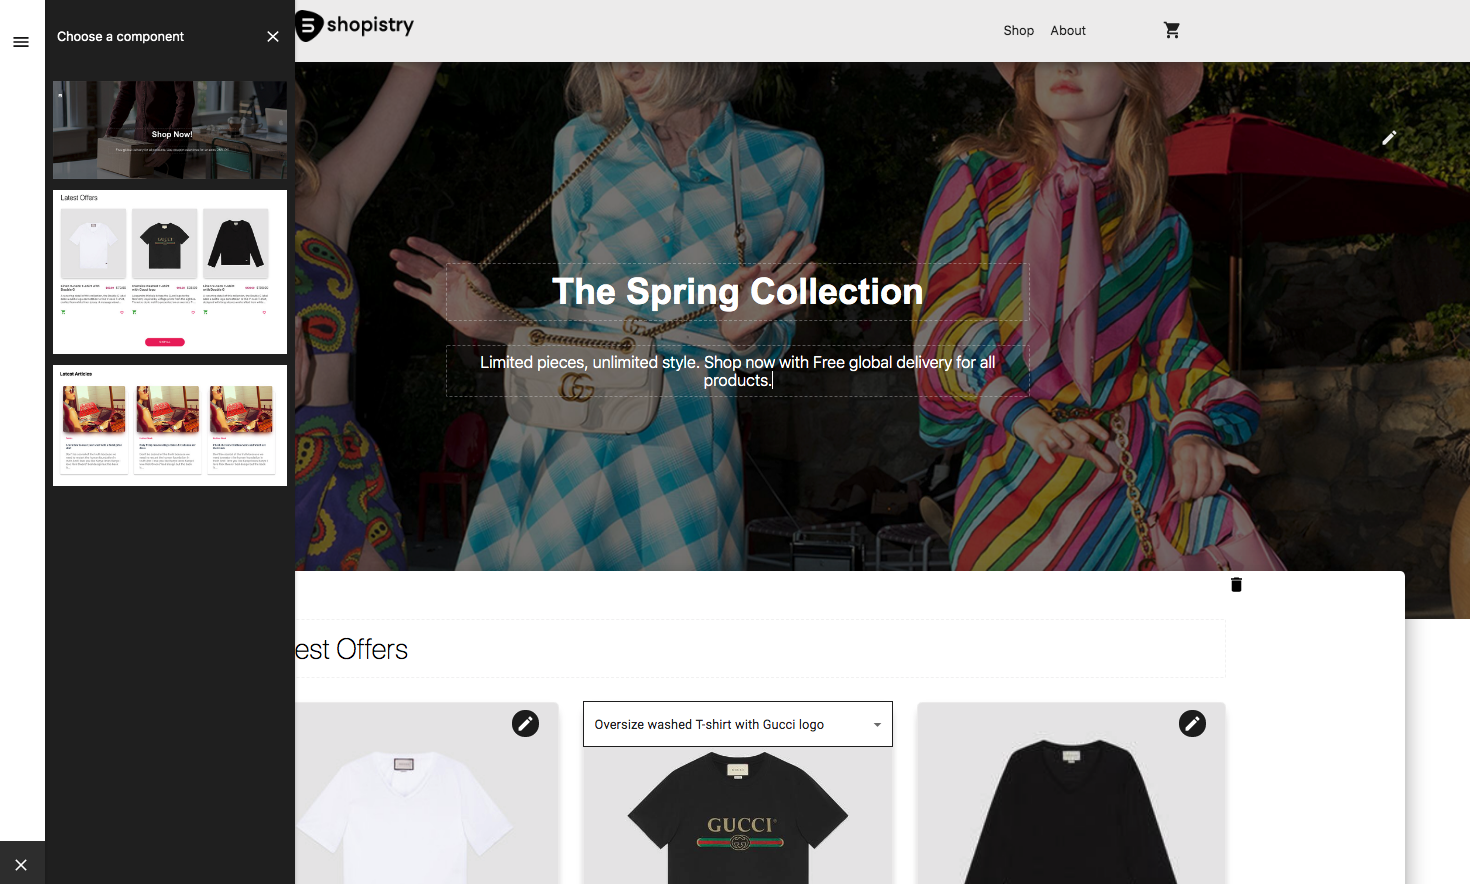 Manage your own storefront easily with Shopistry headless commerce platform